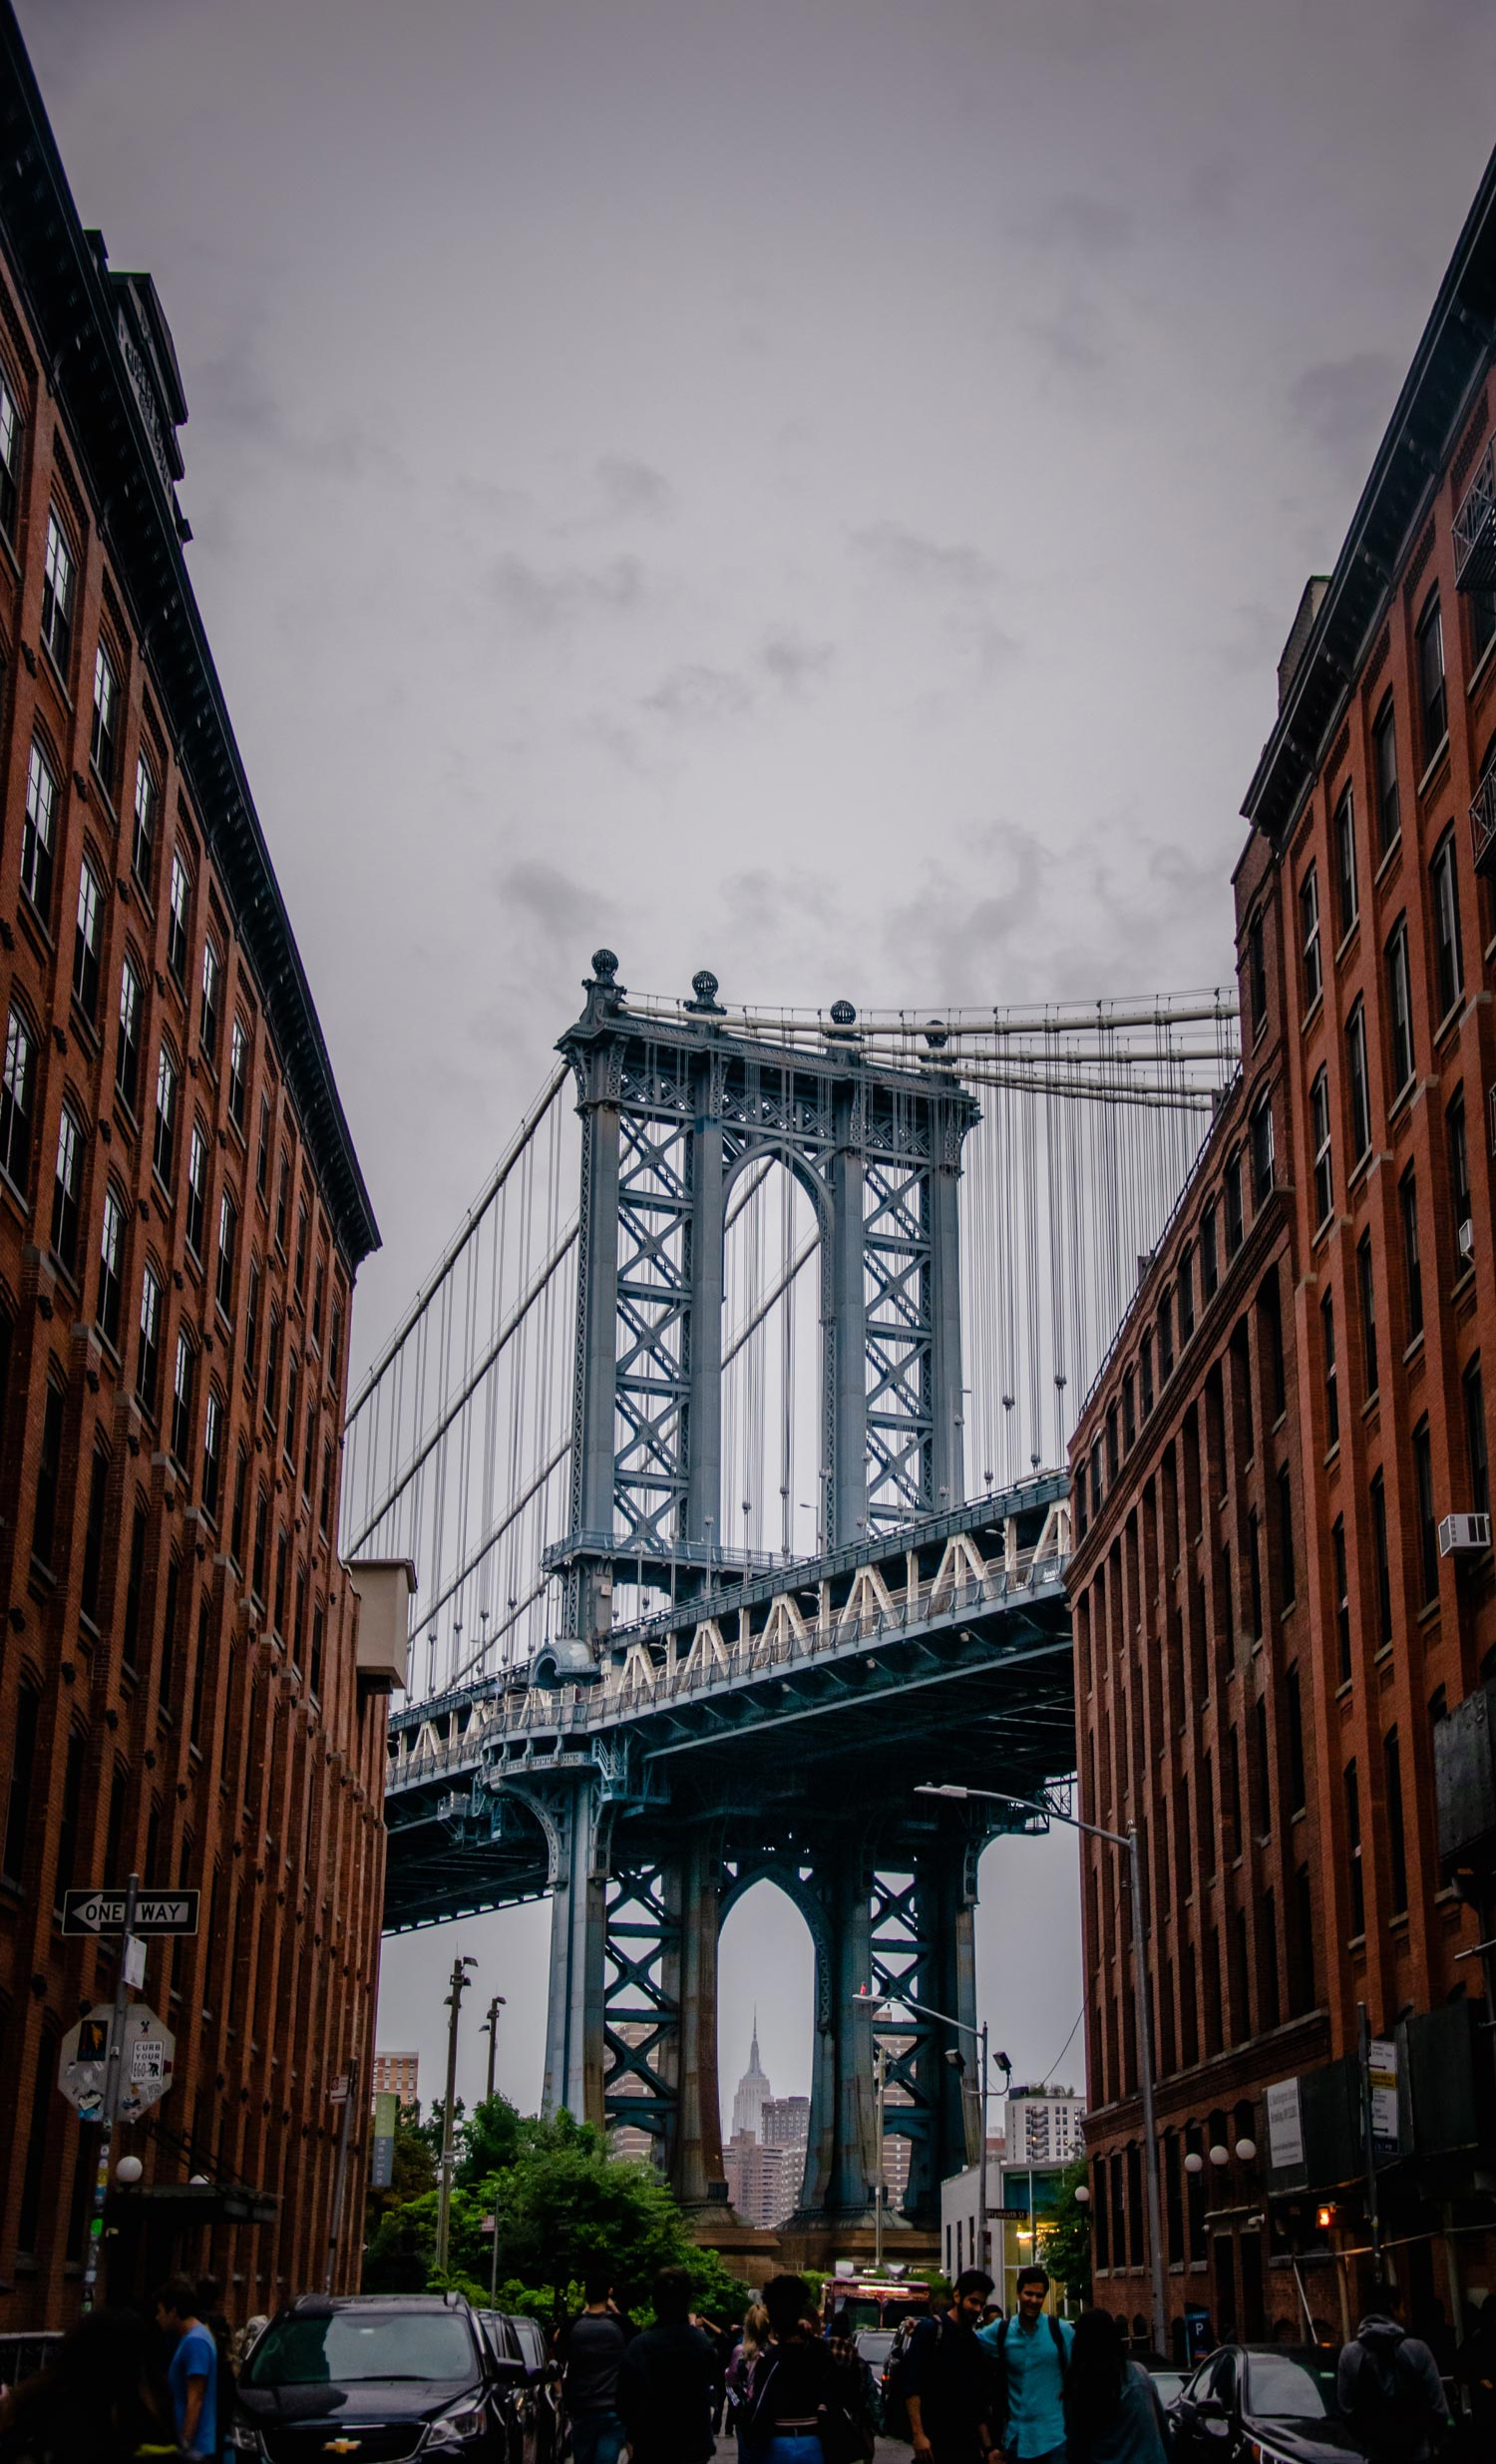 DUMBO_New_York_City_2018_Ruo_Ling_Lu.jpg